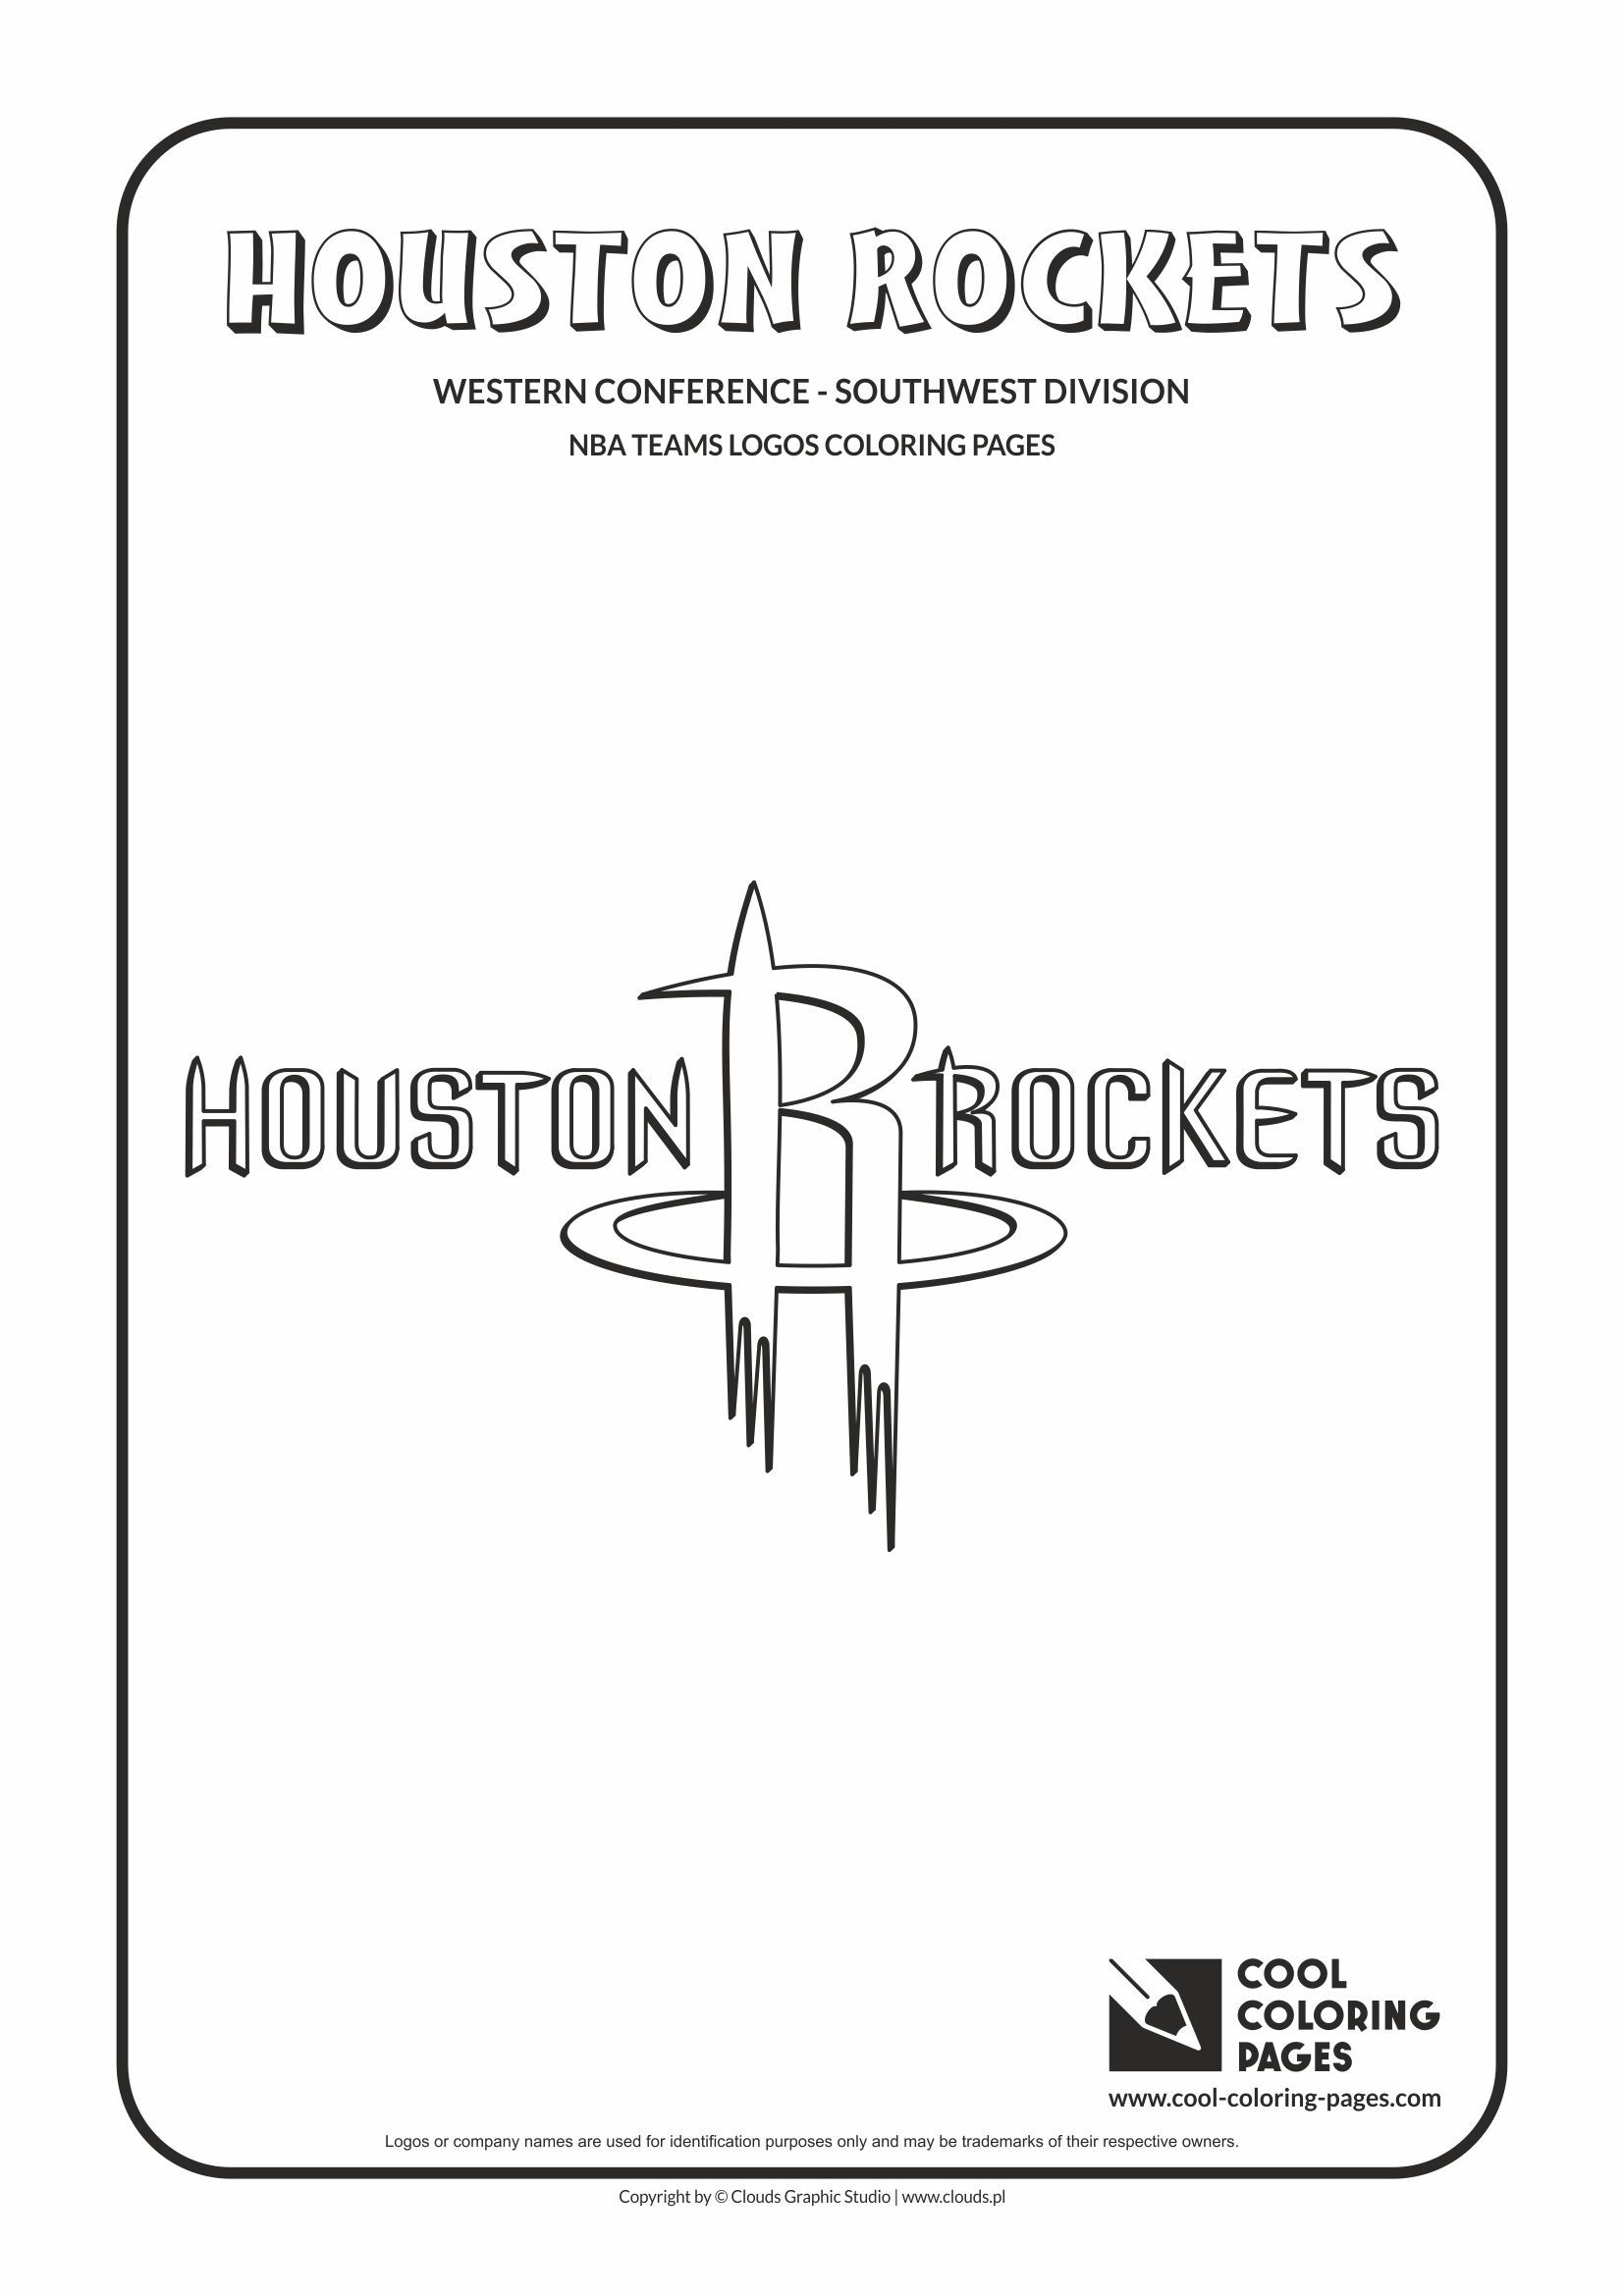 Cool Coloring Pages Nba Basketball Clubs Logos Western Conference Southwest Division Nba Basketball Teams Basketball Games For Kids Cool Coloring Pages